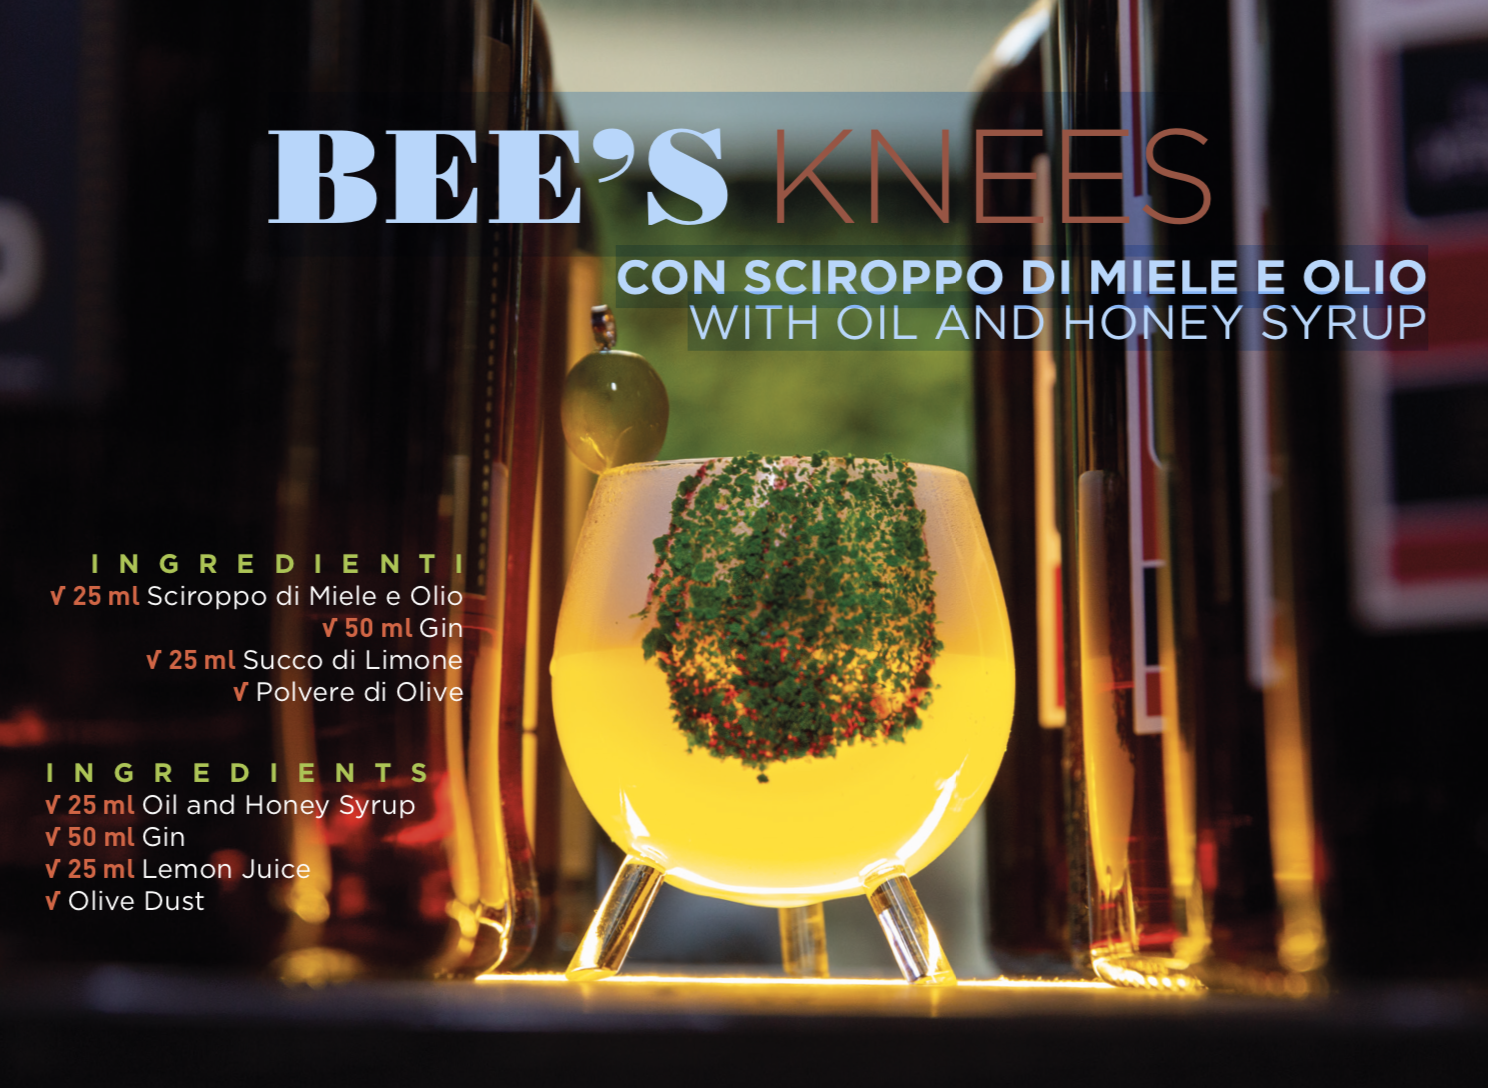 BEE'S KNEES WITH OIL AND HONEY SYRUP